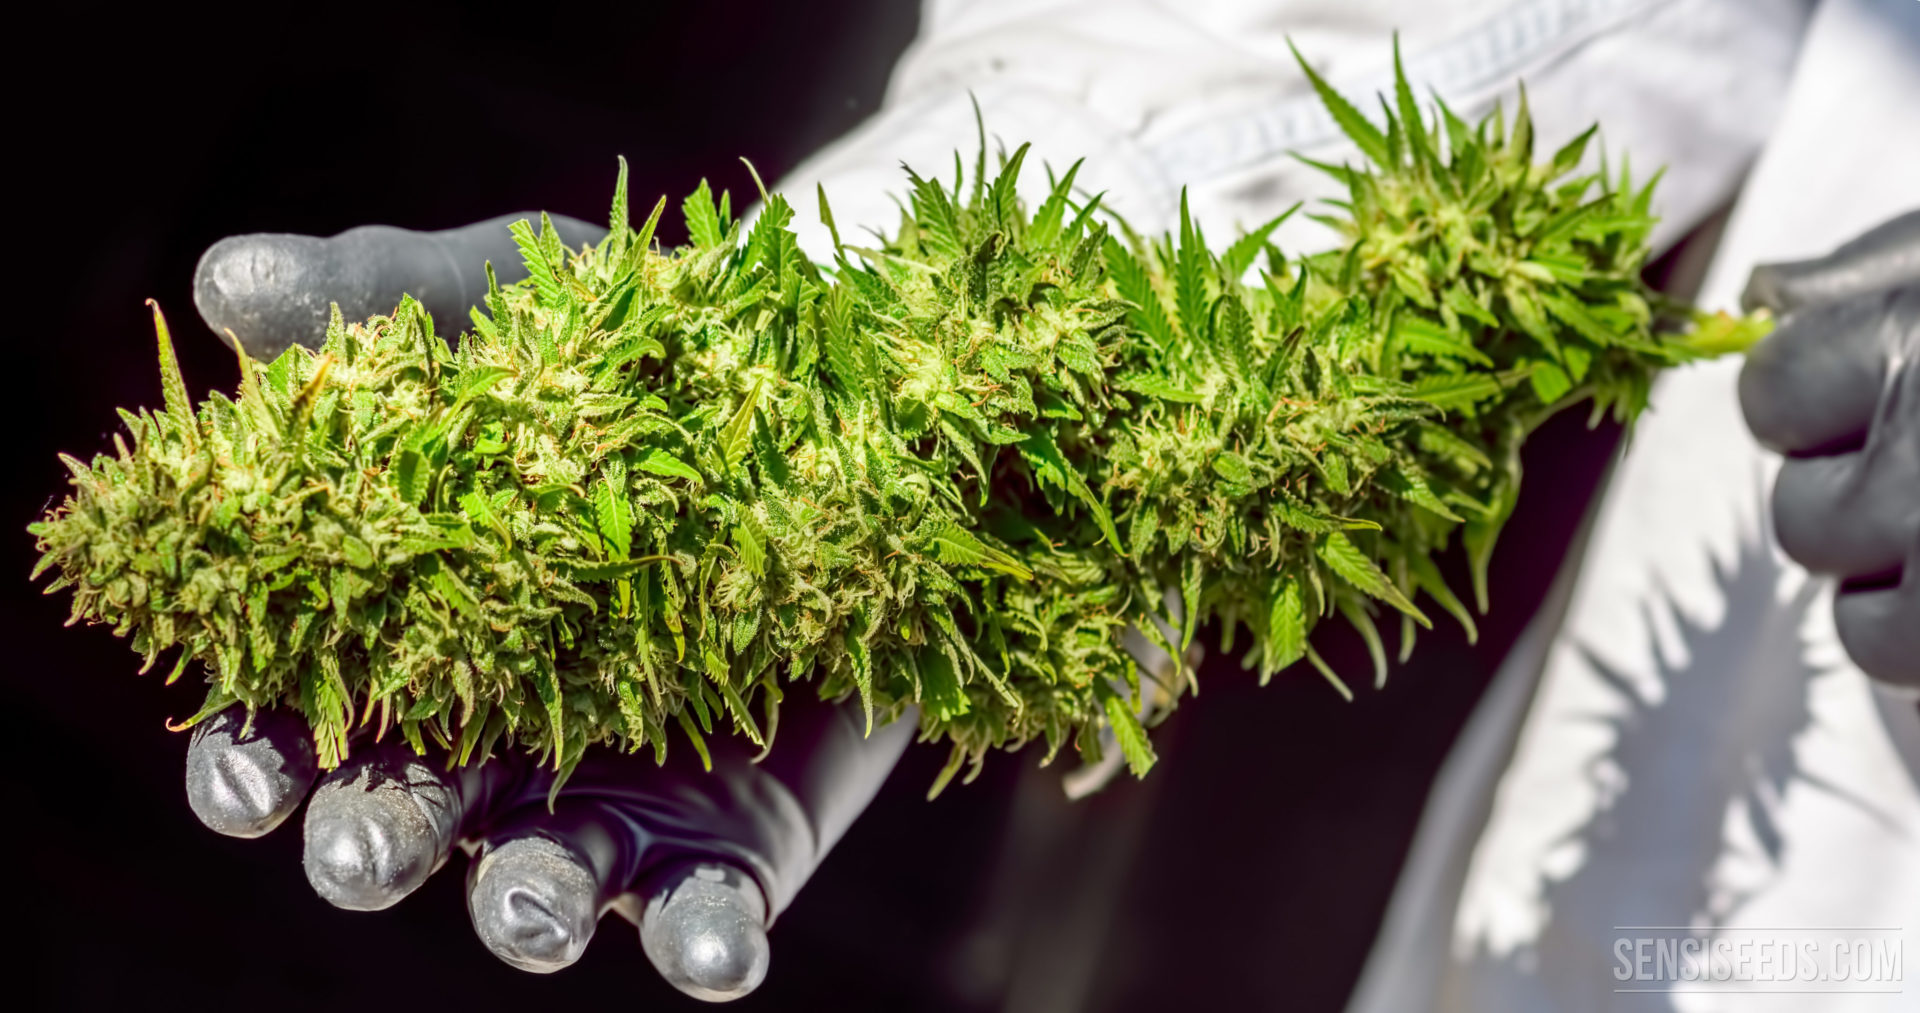 https://sensiseeds.com/blog/wp-content/uploads/2014/12/How-to-maximise-the-yield-of-a-cannabis-plant-SensiSeeds-3-1920x1013.jpg